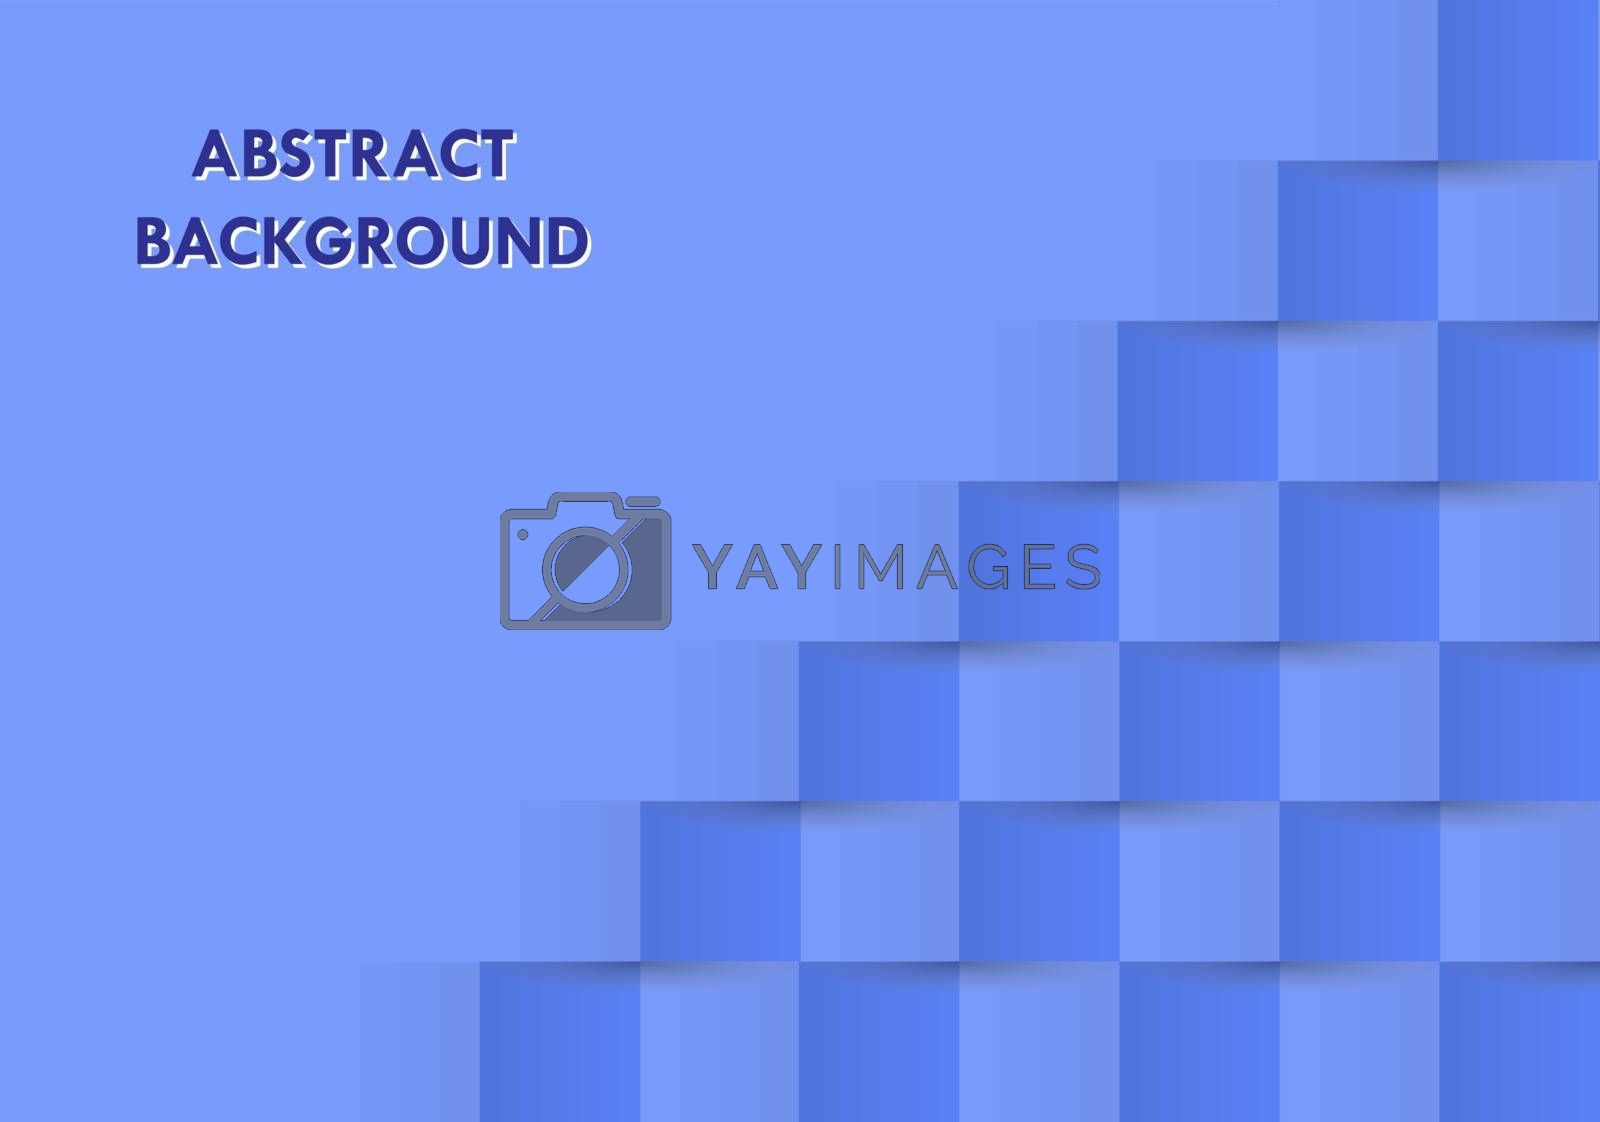 Abstract background in blue for decoration and design